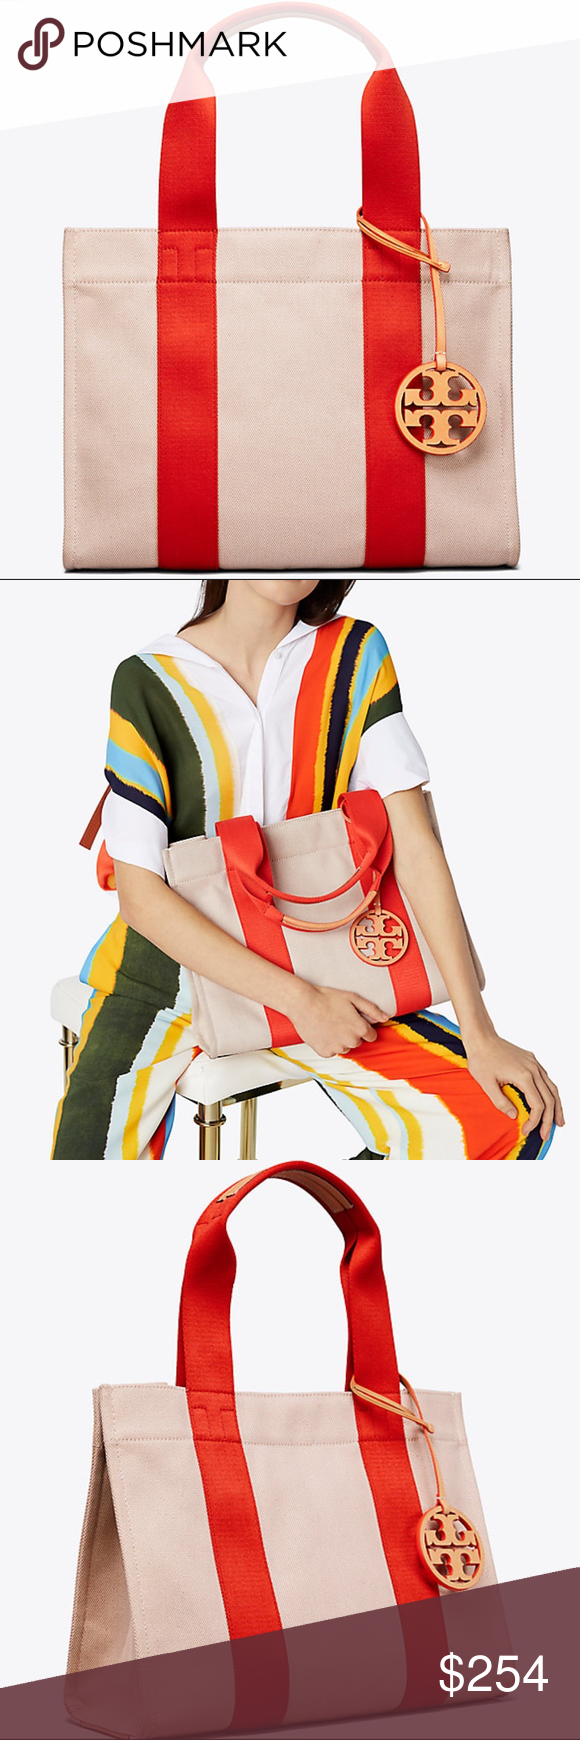 38cd8d09f NWT TORY BURCH Iconic MUST HAVE Miller Canvas Tote NWT TORY BURCH